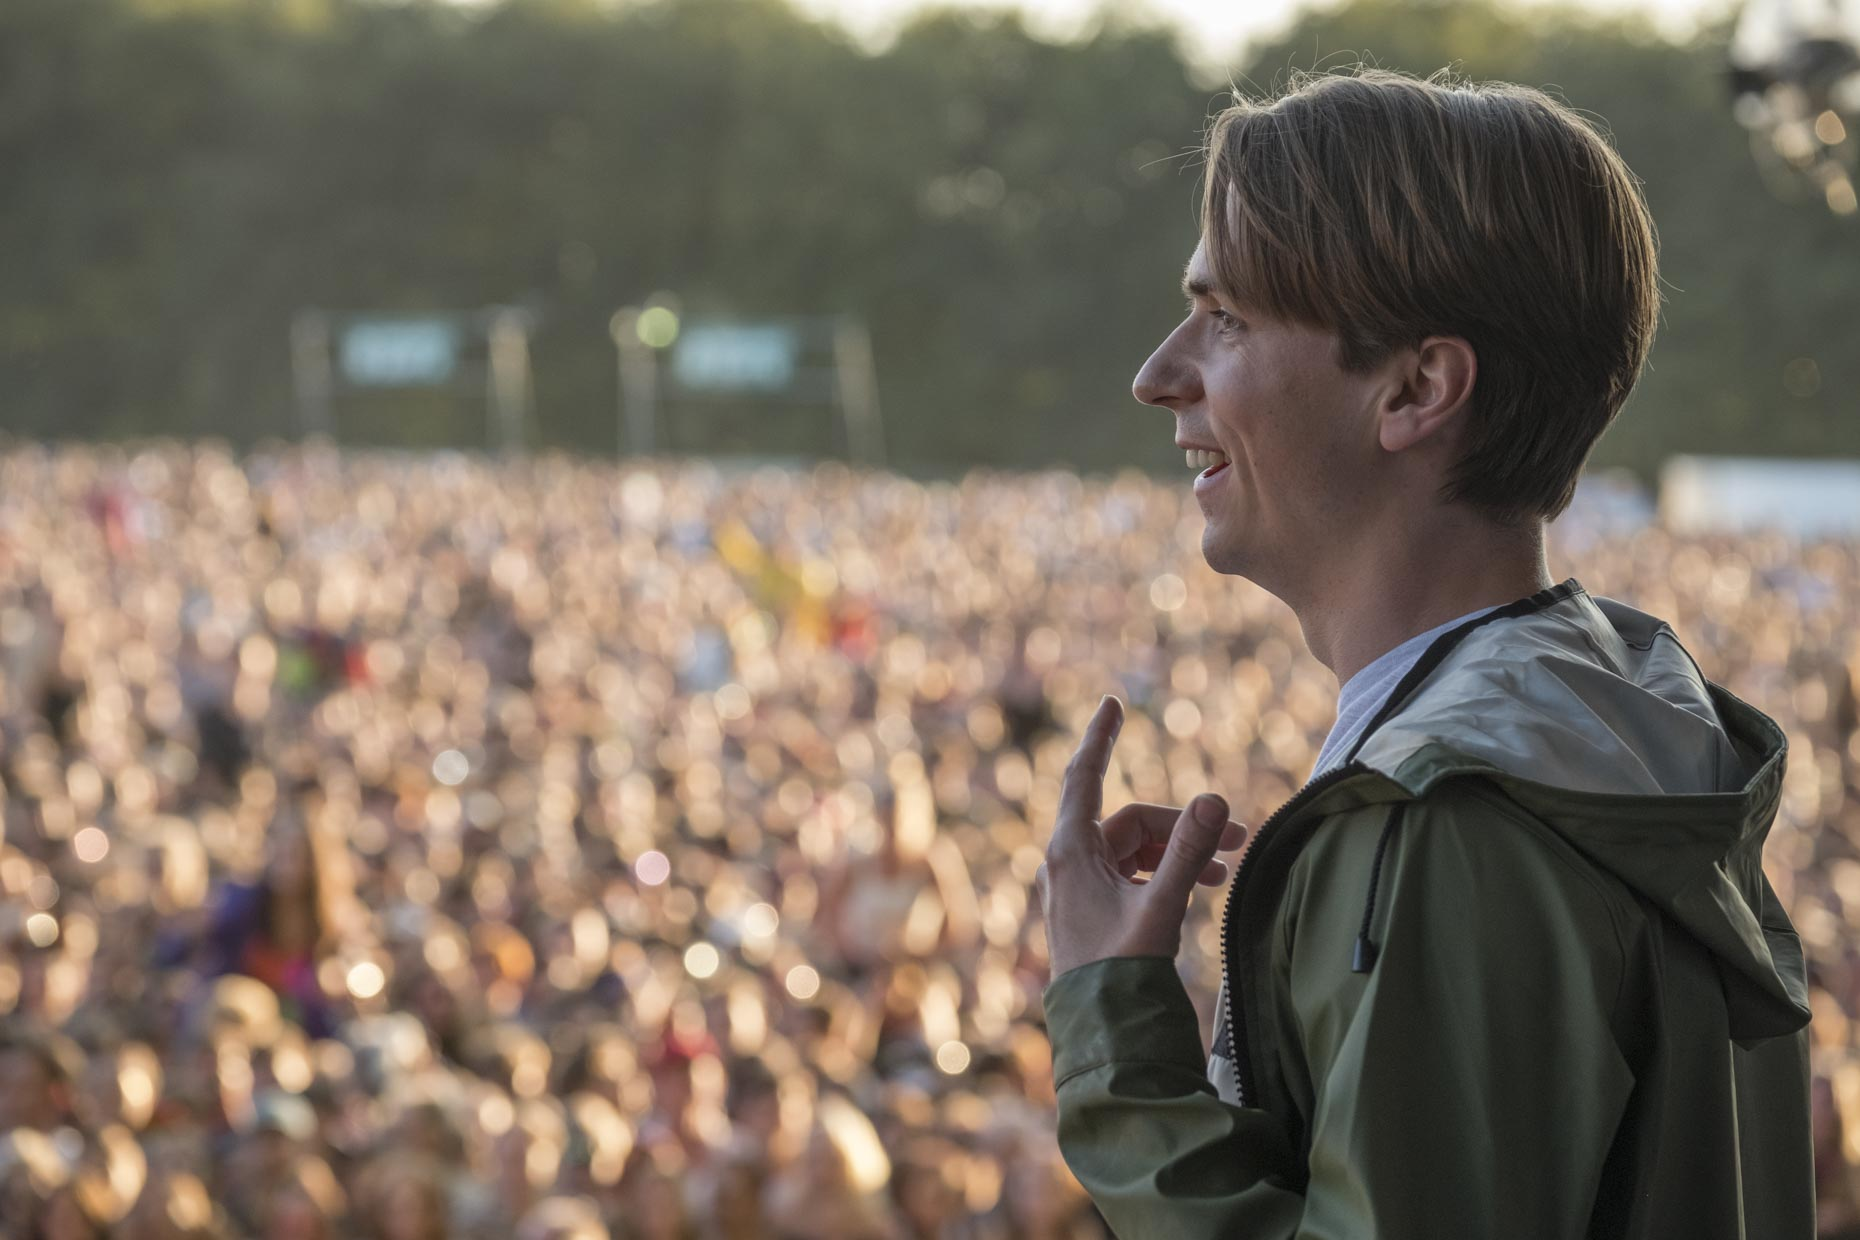 Joe Thomas on stage for 'The Festival', out August 14 CREDIT: Nick Wall/Entertainment Films